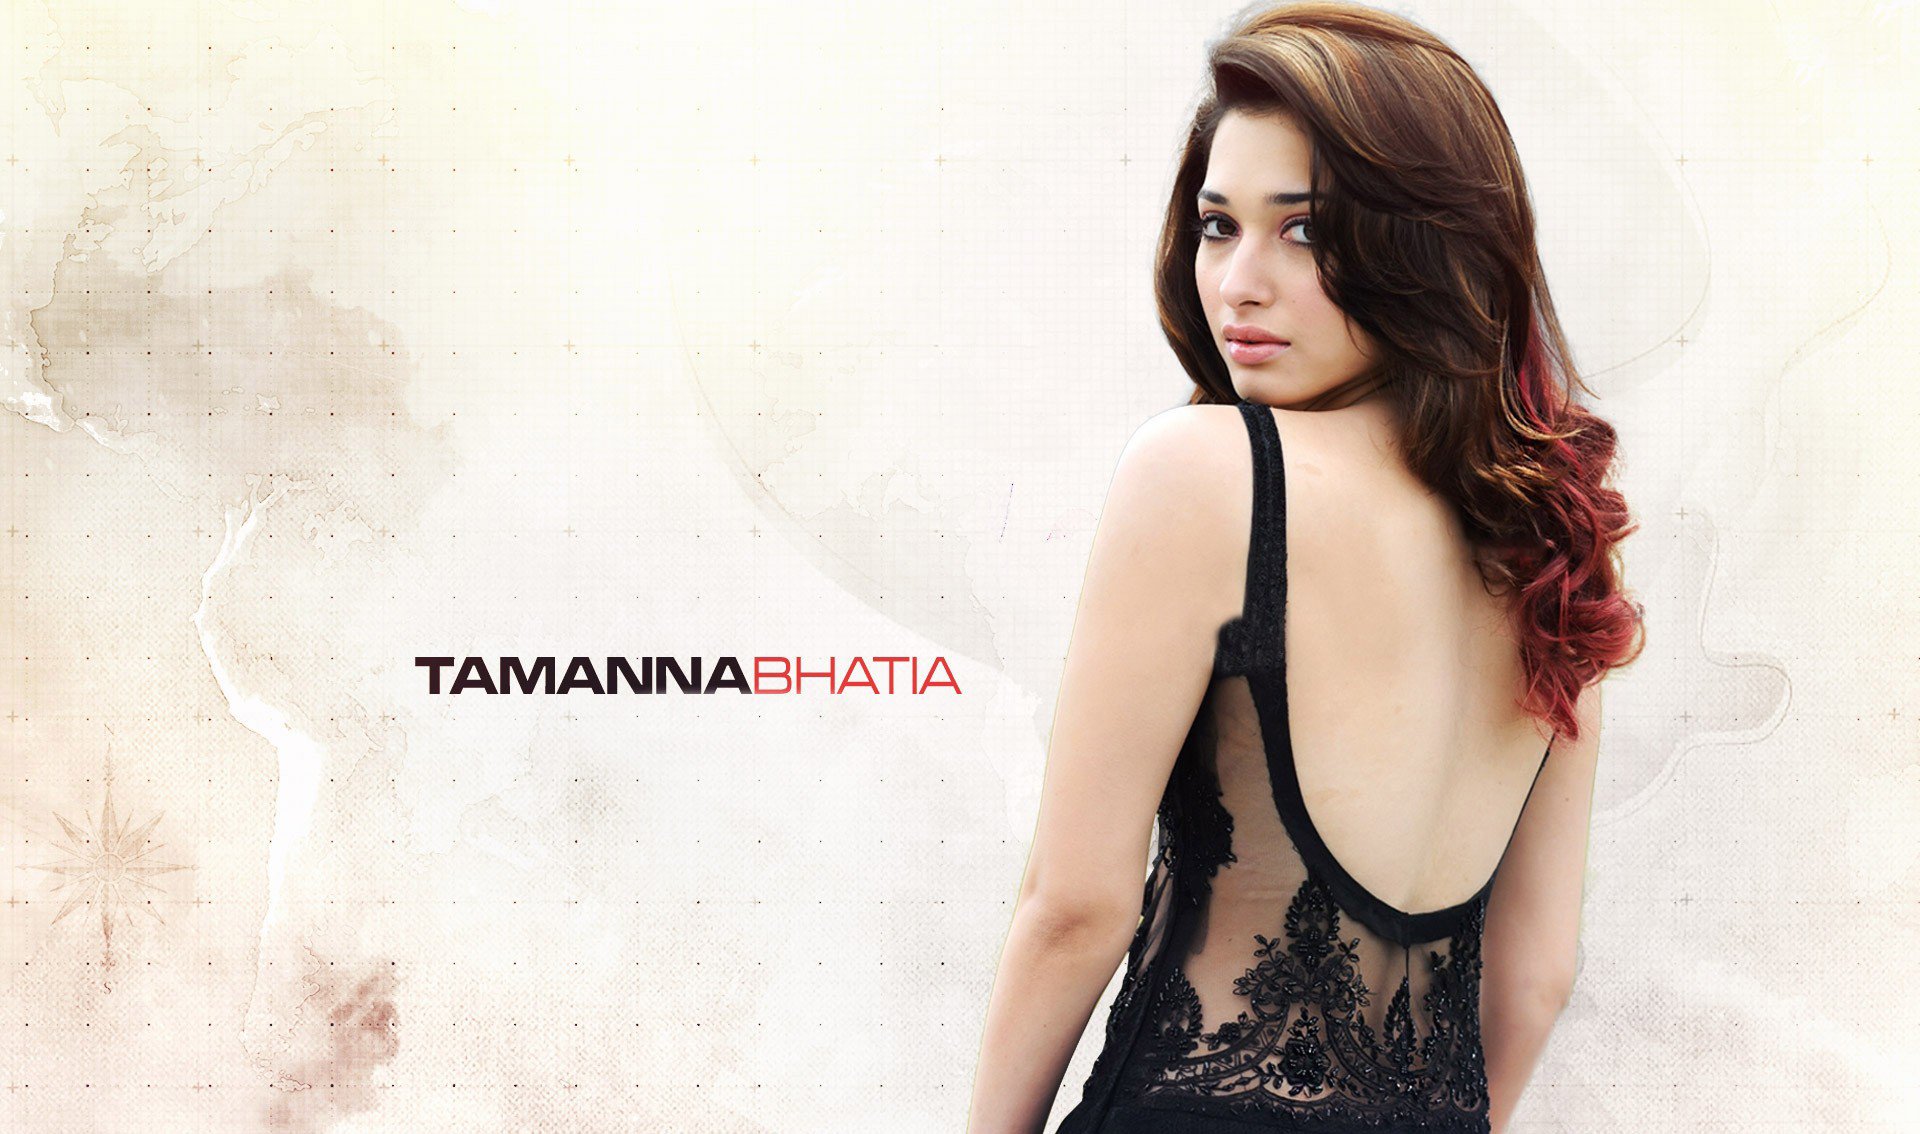 Tamana Hd: Tamanna Bhatia Wallpapers, Pictures, Images